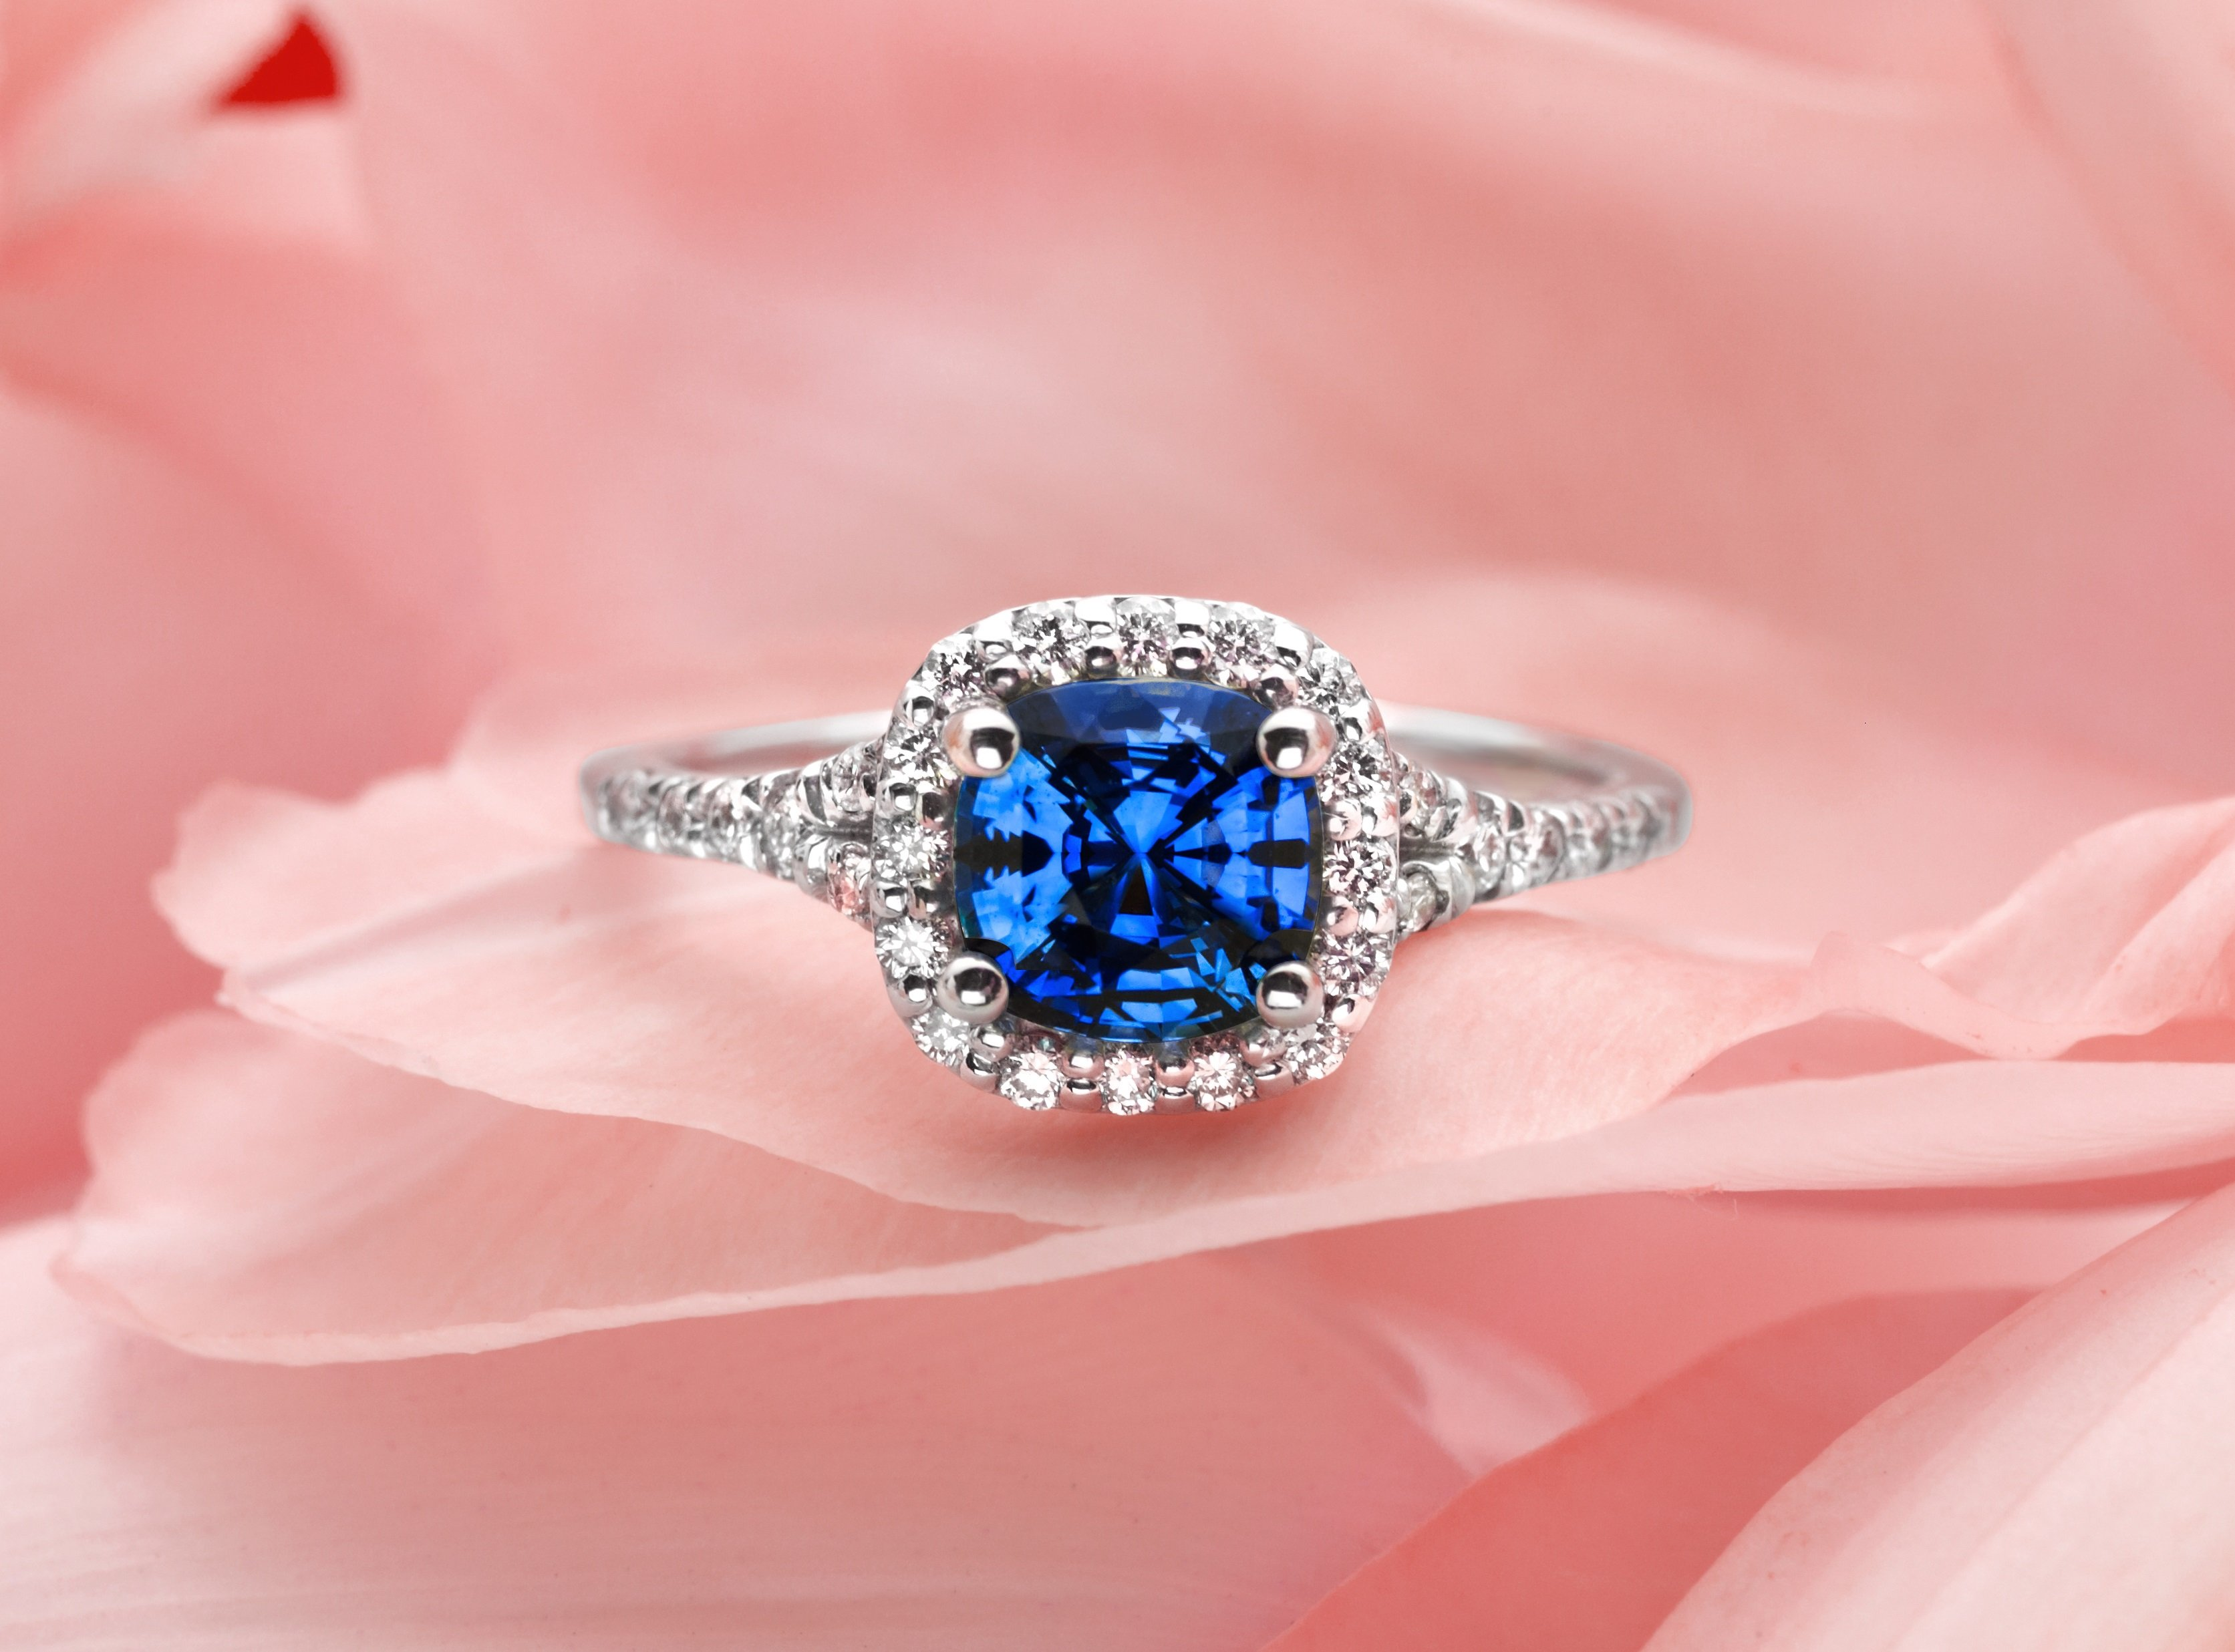 Top 10 Designs Of The Celebrity Engagement Rings |